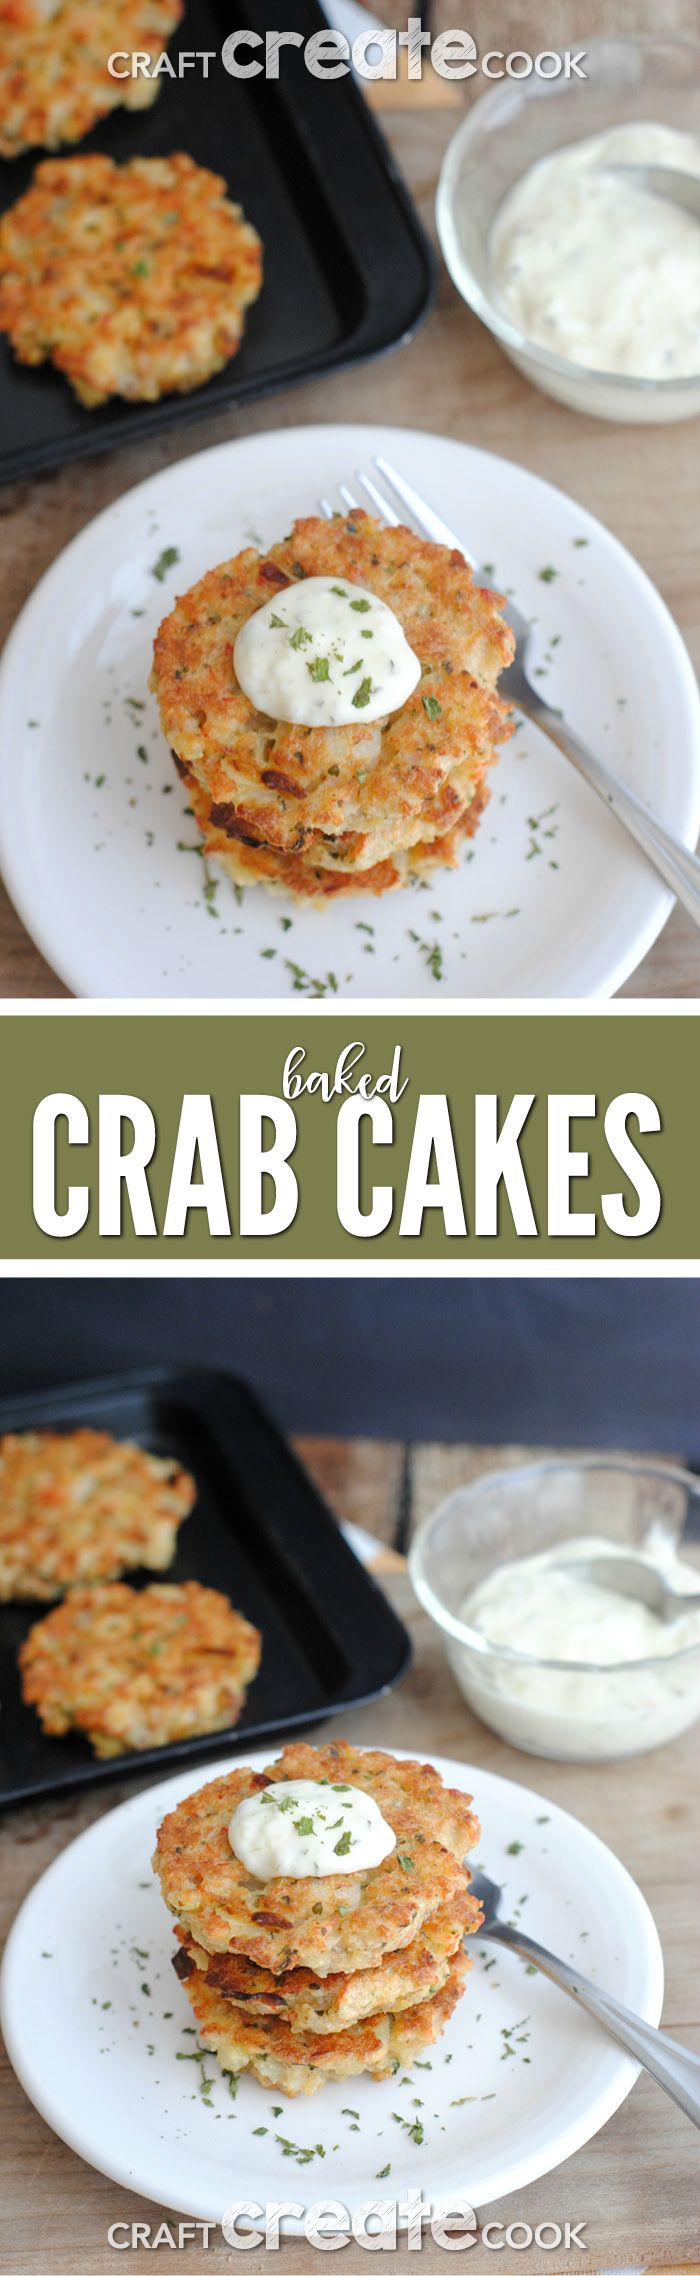 Baked crab cakes are easy to make, healthy and delicious! via @CraftCreatCook1